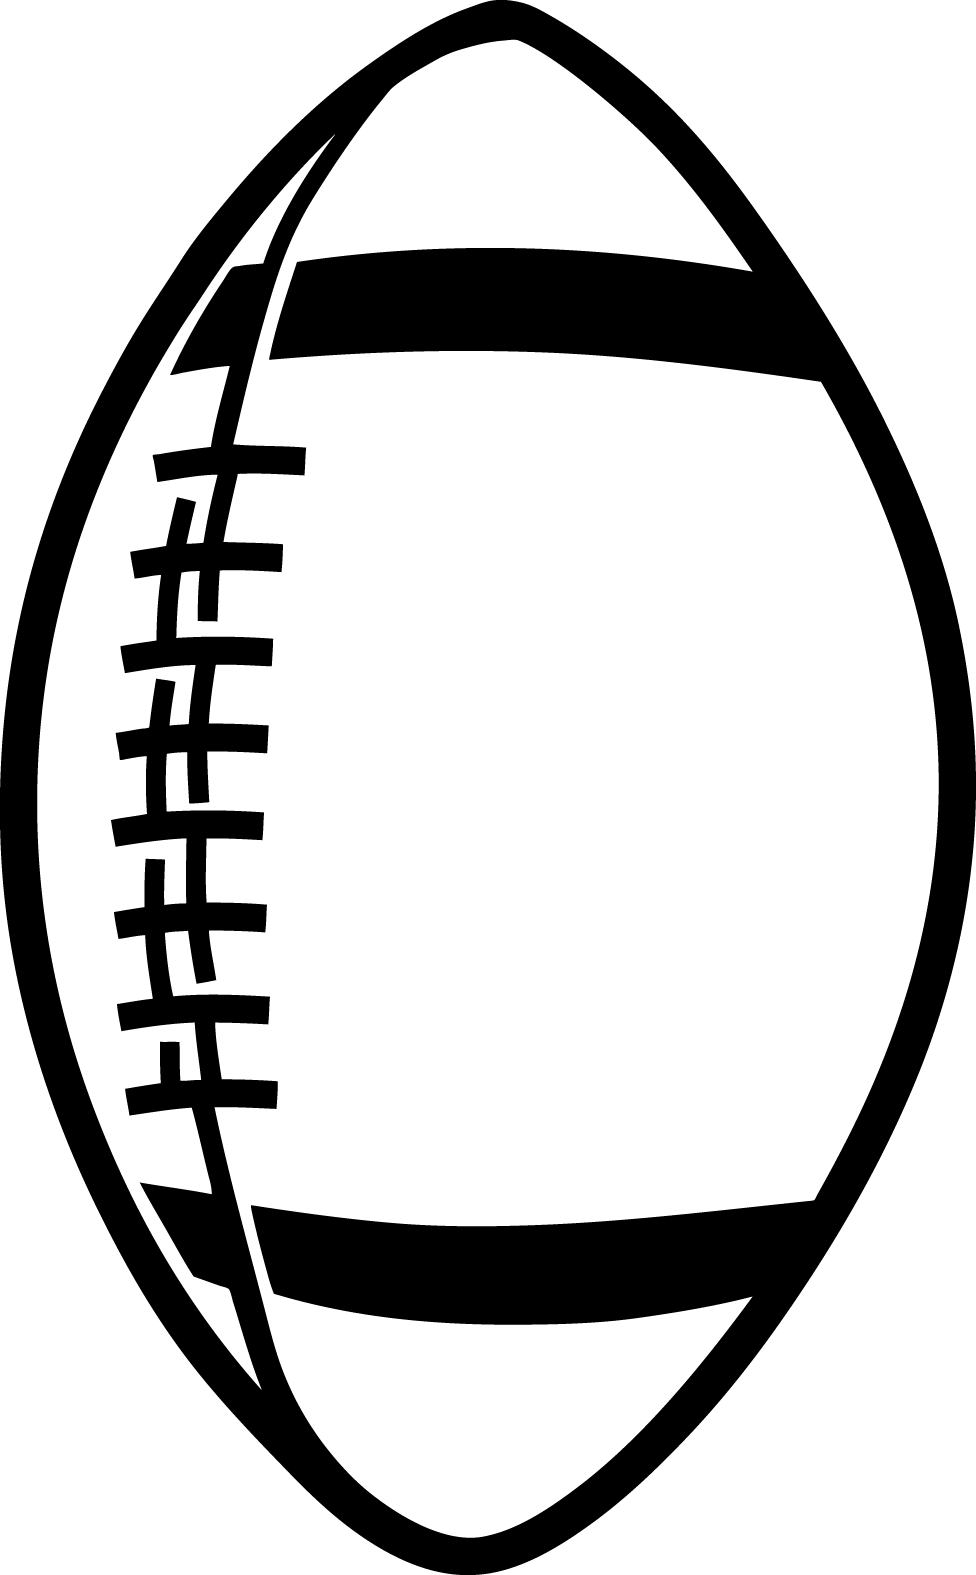 Vector outline football. Free art download clip